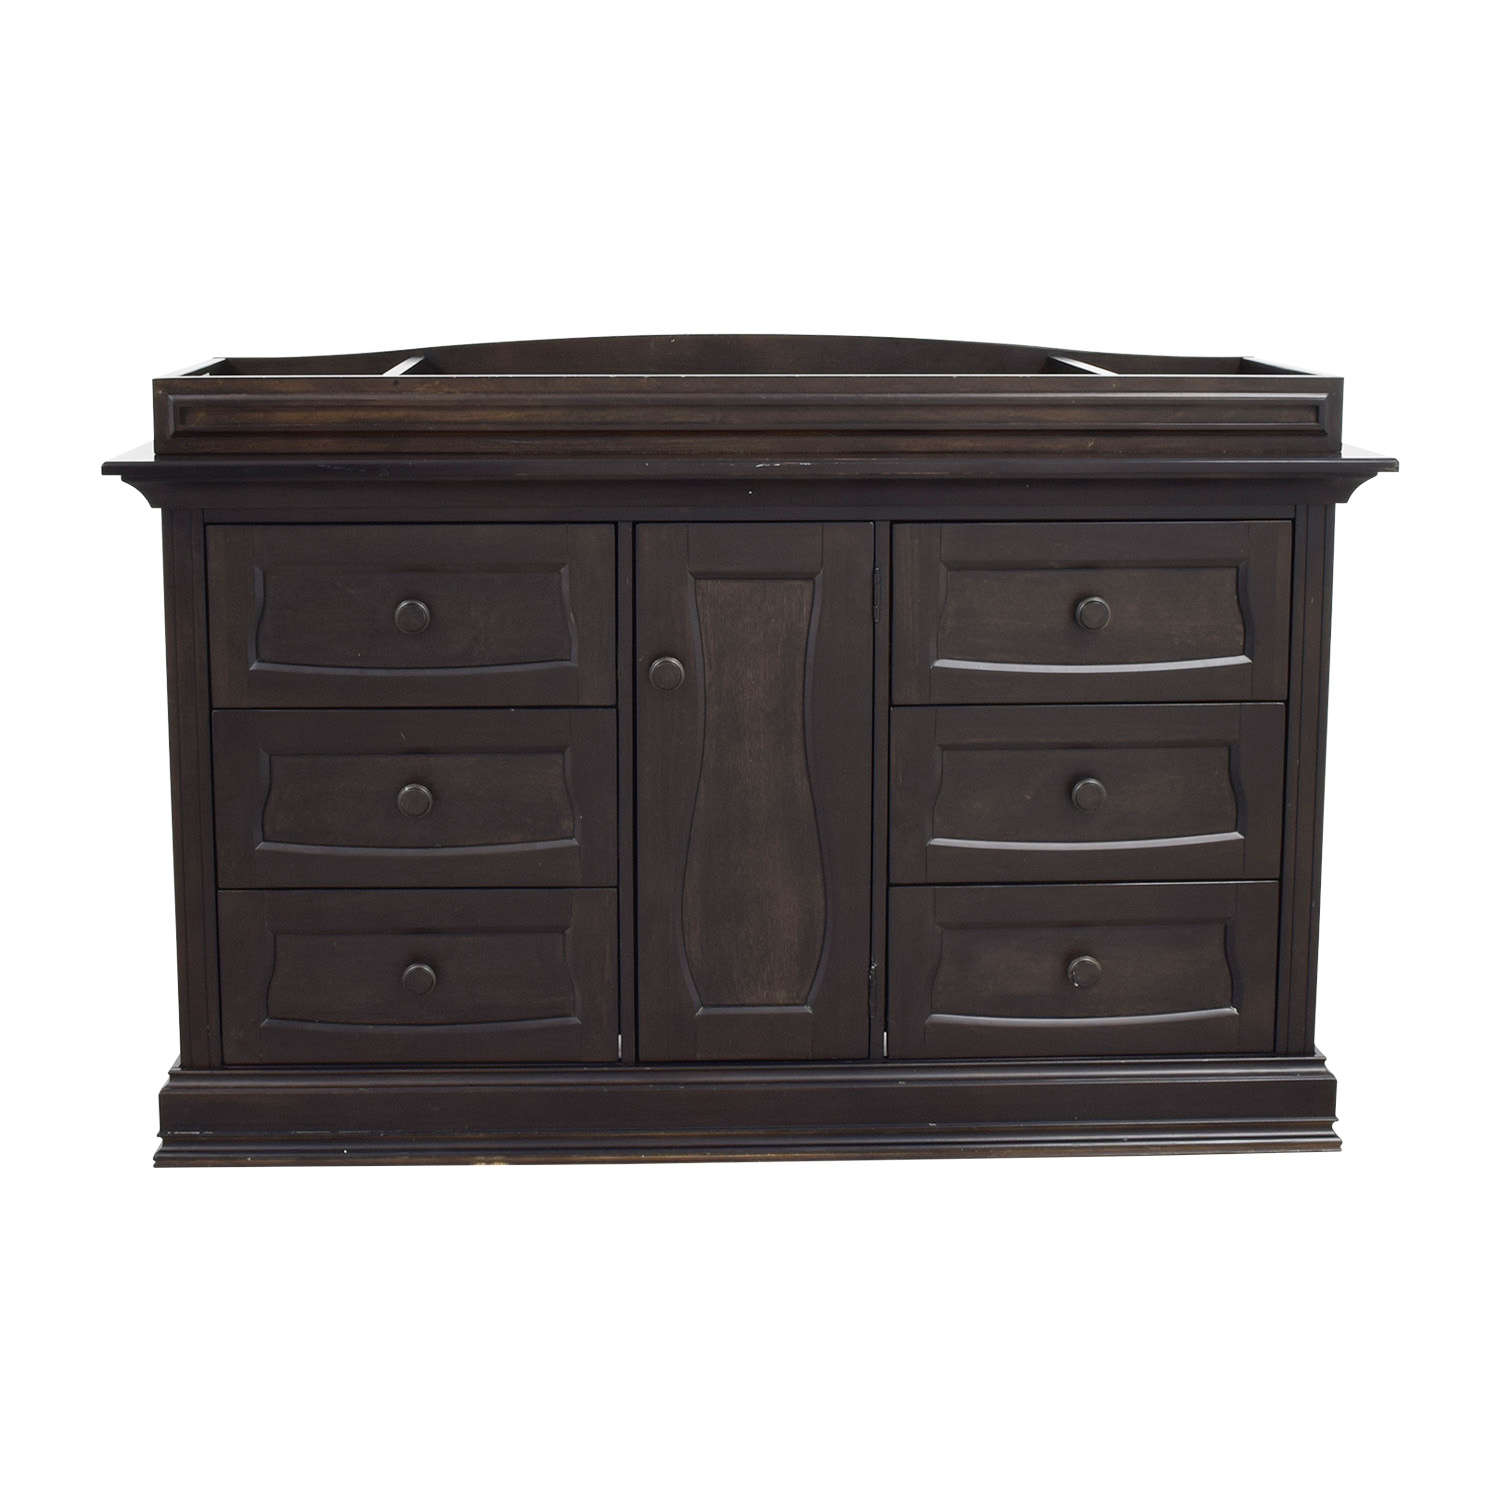 eco chic furniture. Shop Eco Chic Baby Dorchester Six-Drawer Dresser Furniture